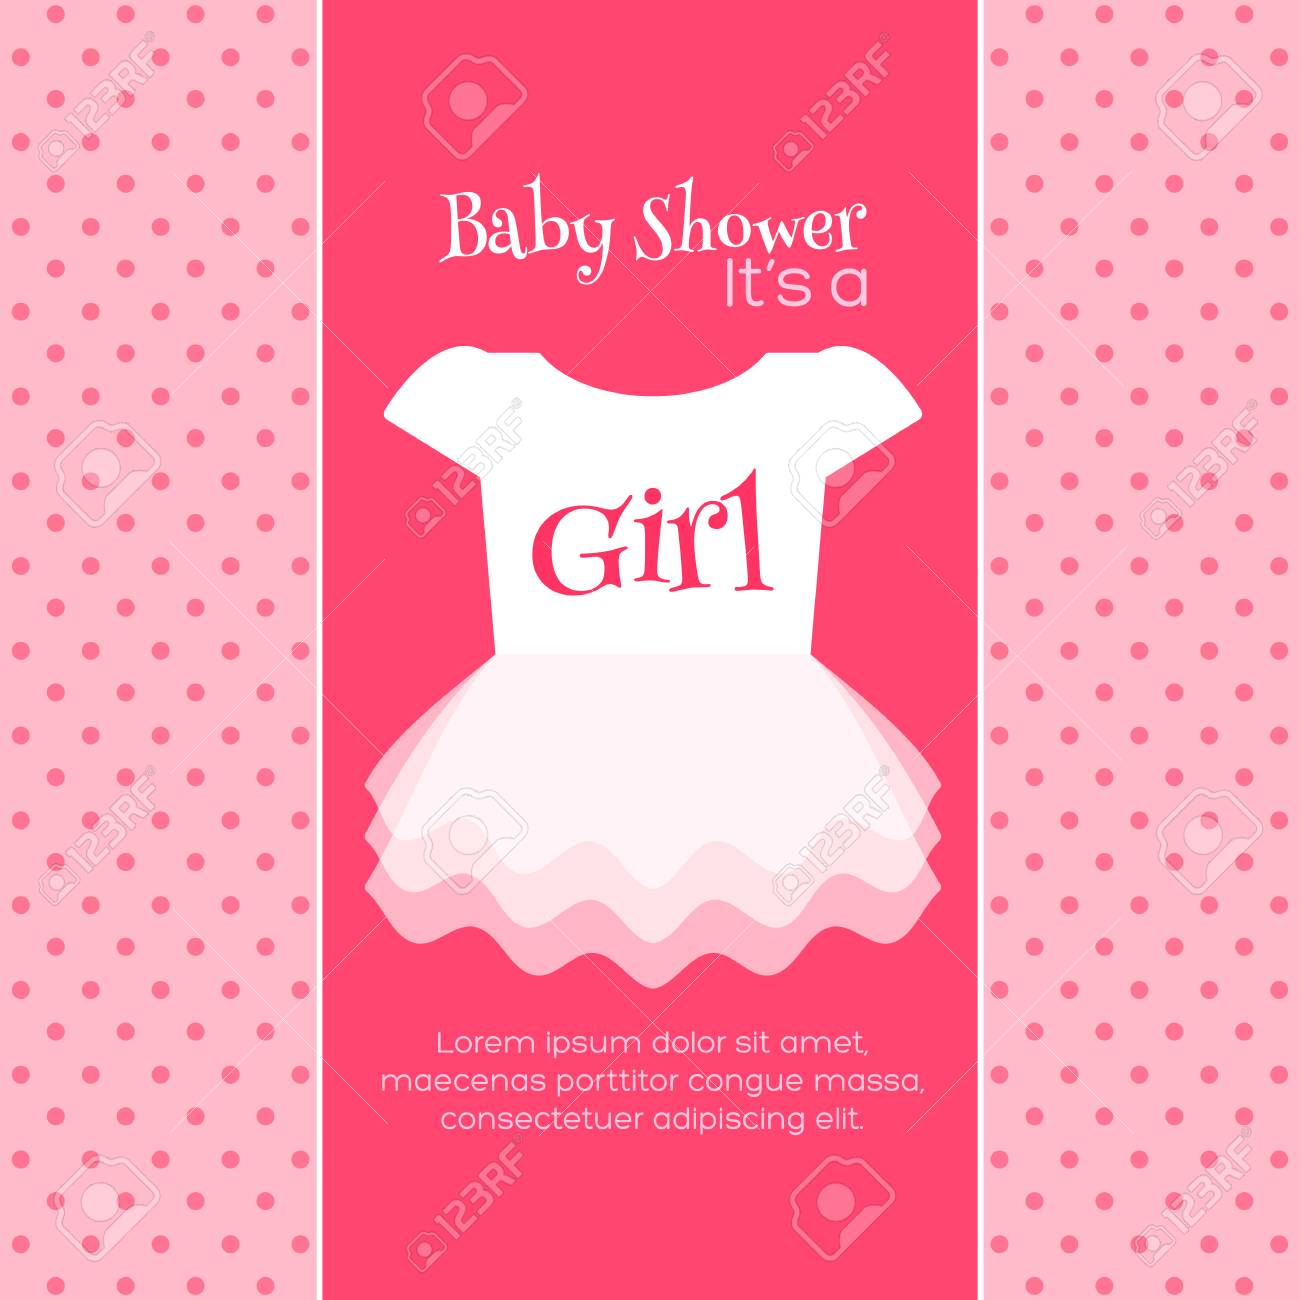 Baby Girl Shower Invitation Template Vector Design